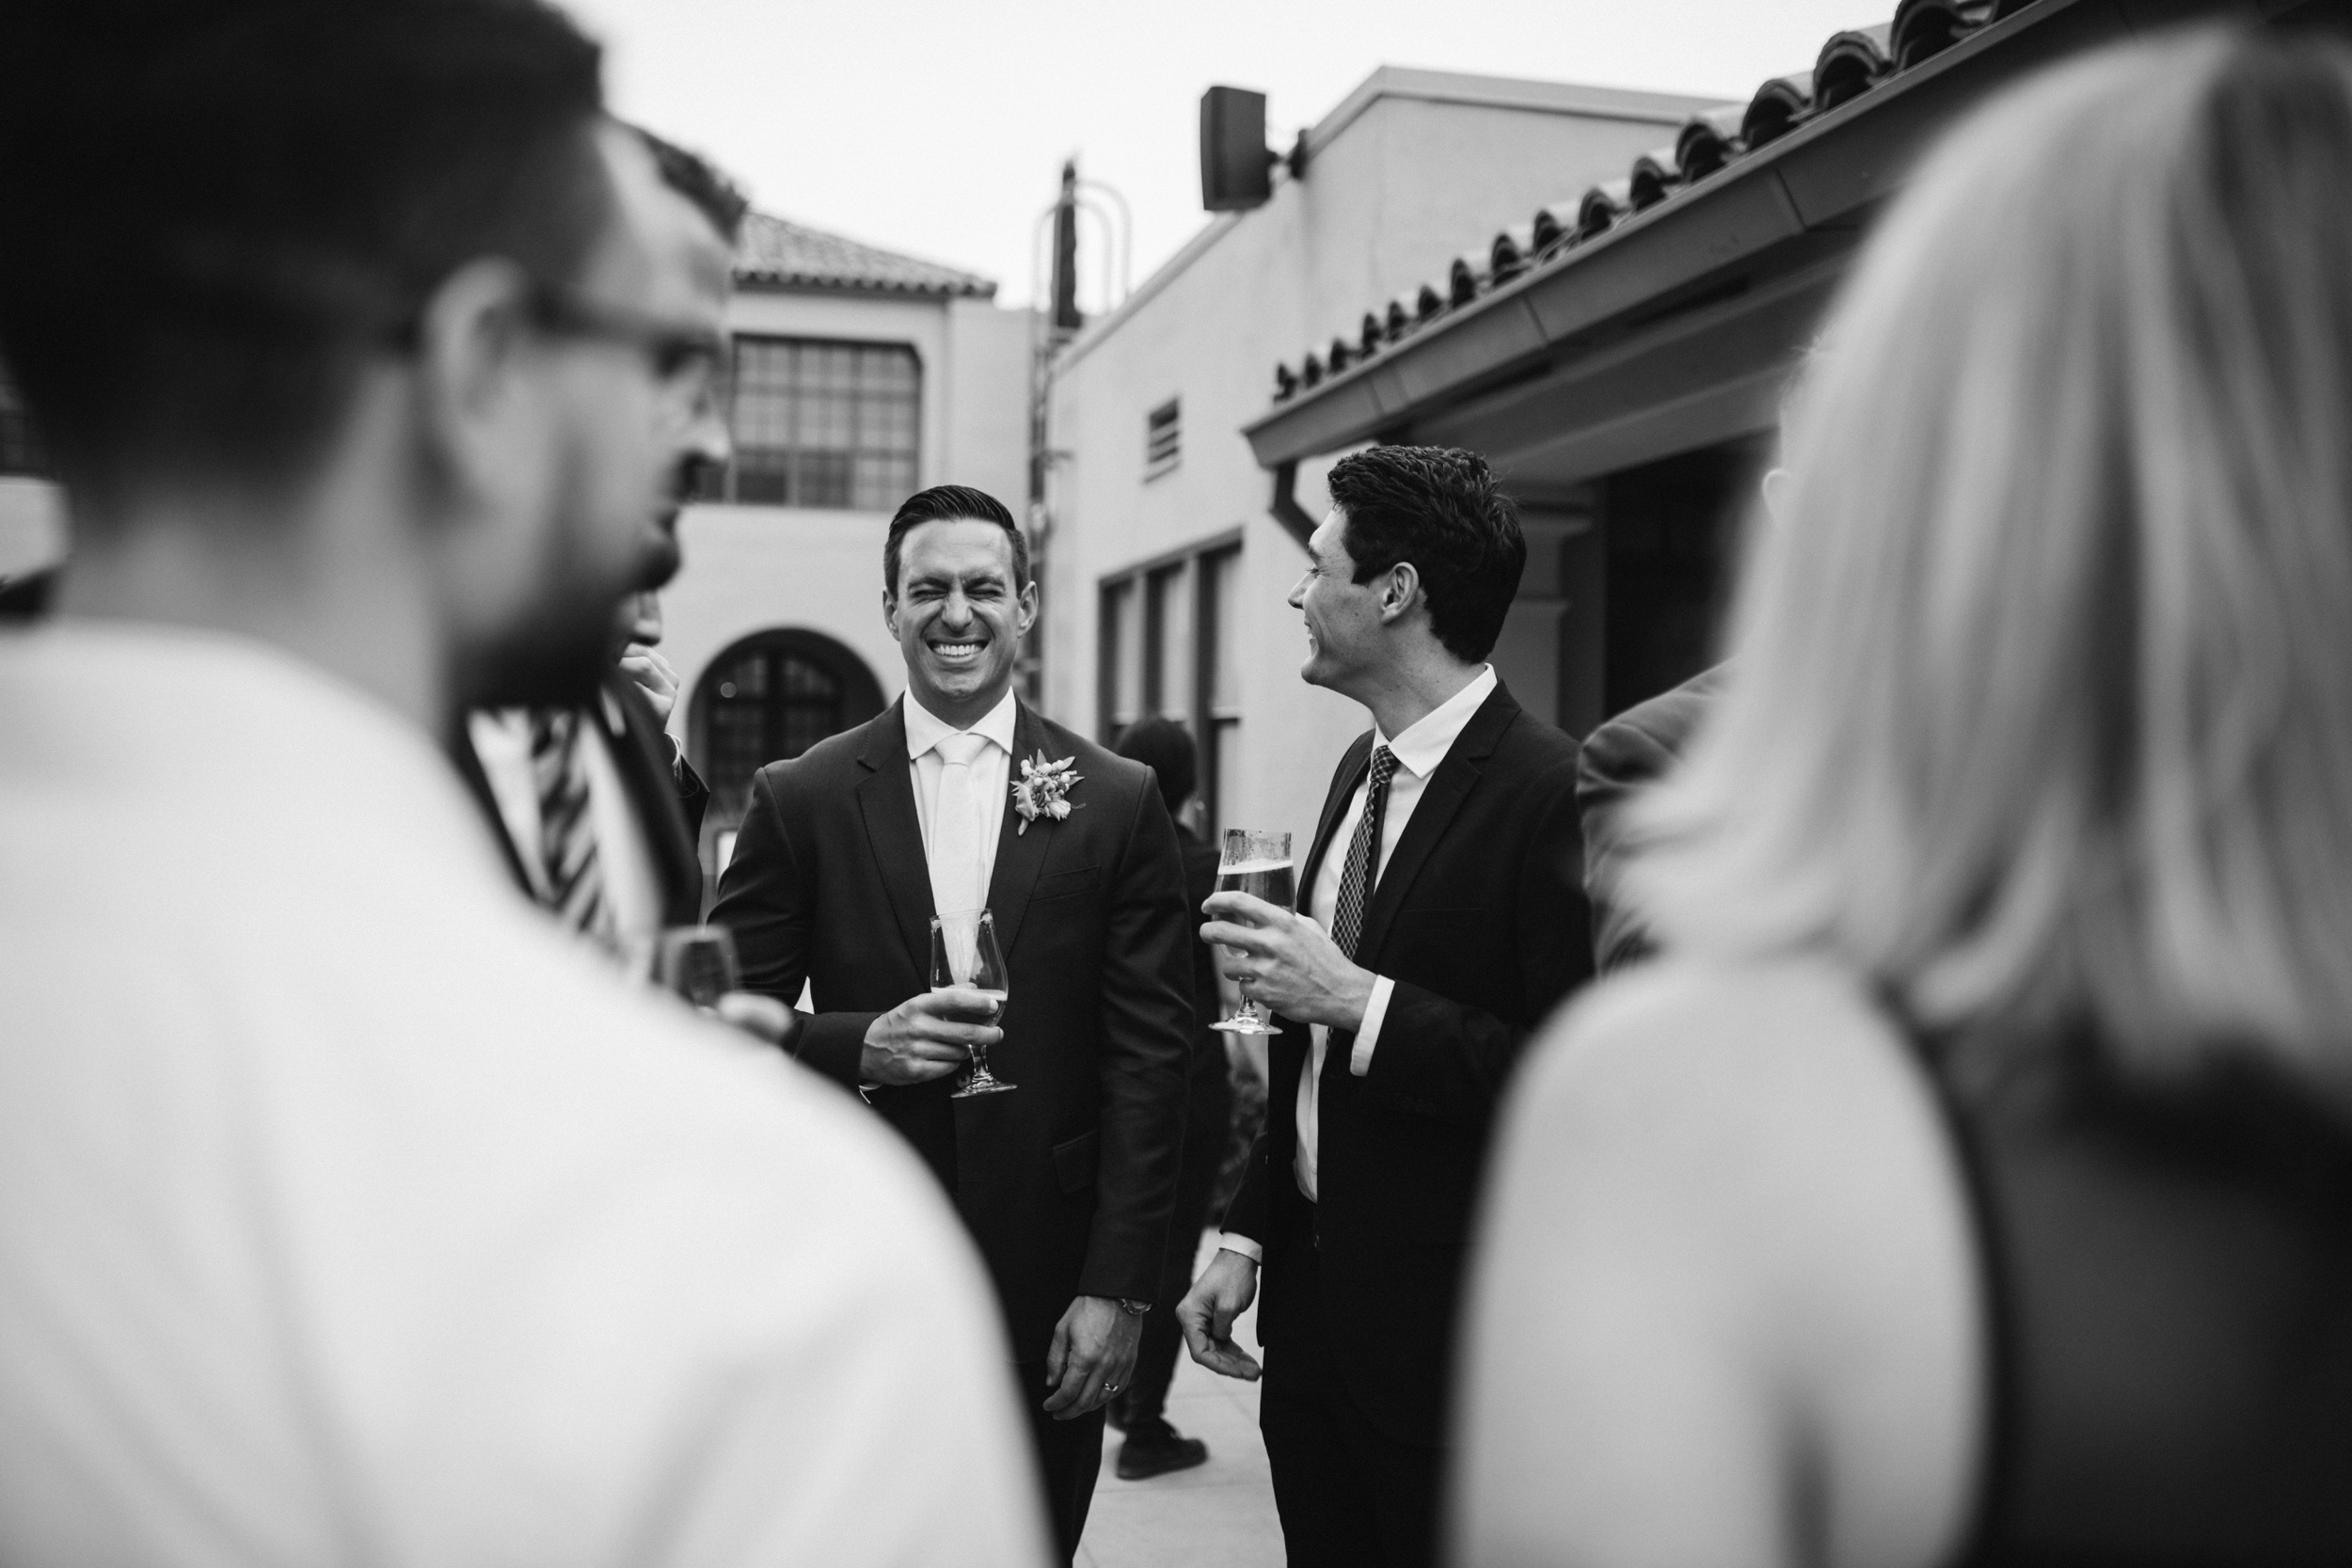 stone_brewery_wedding-45.jpg